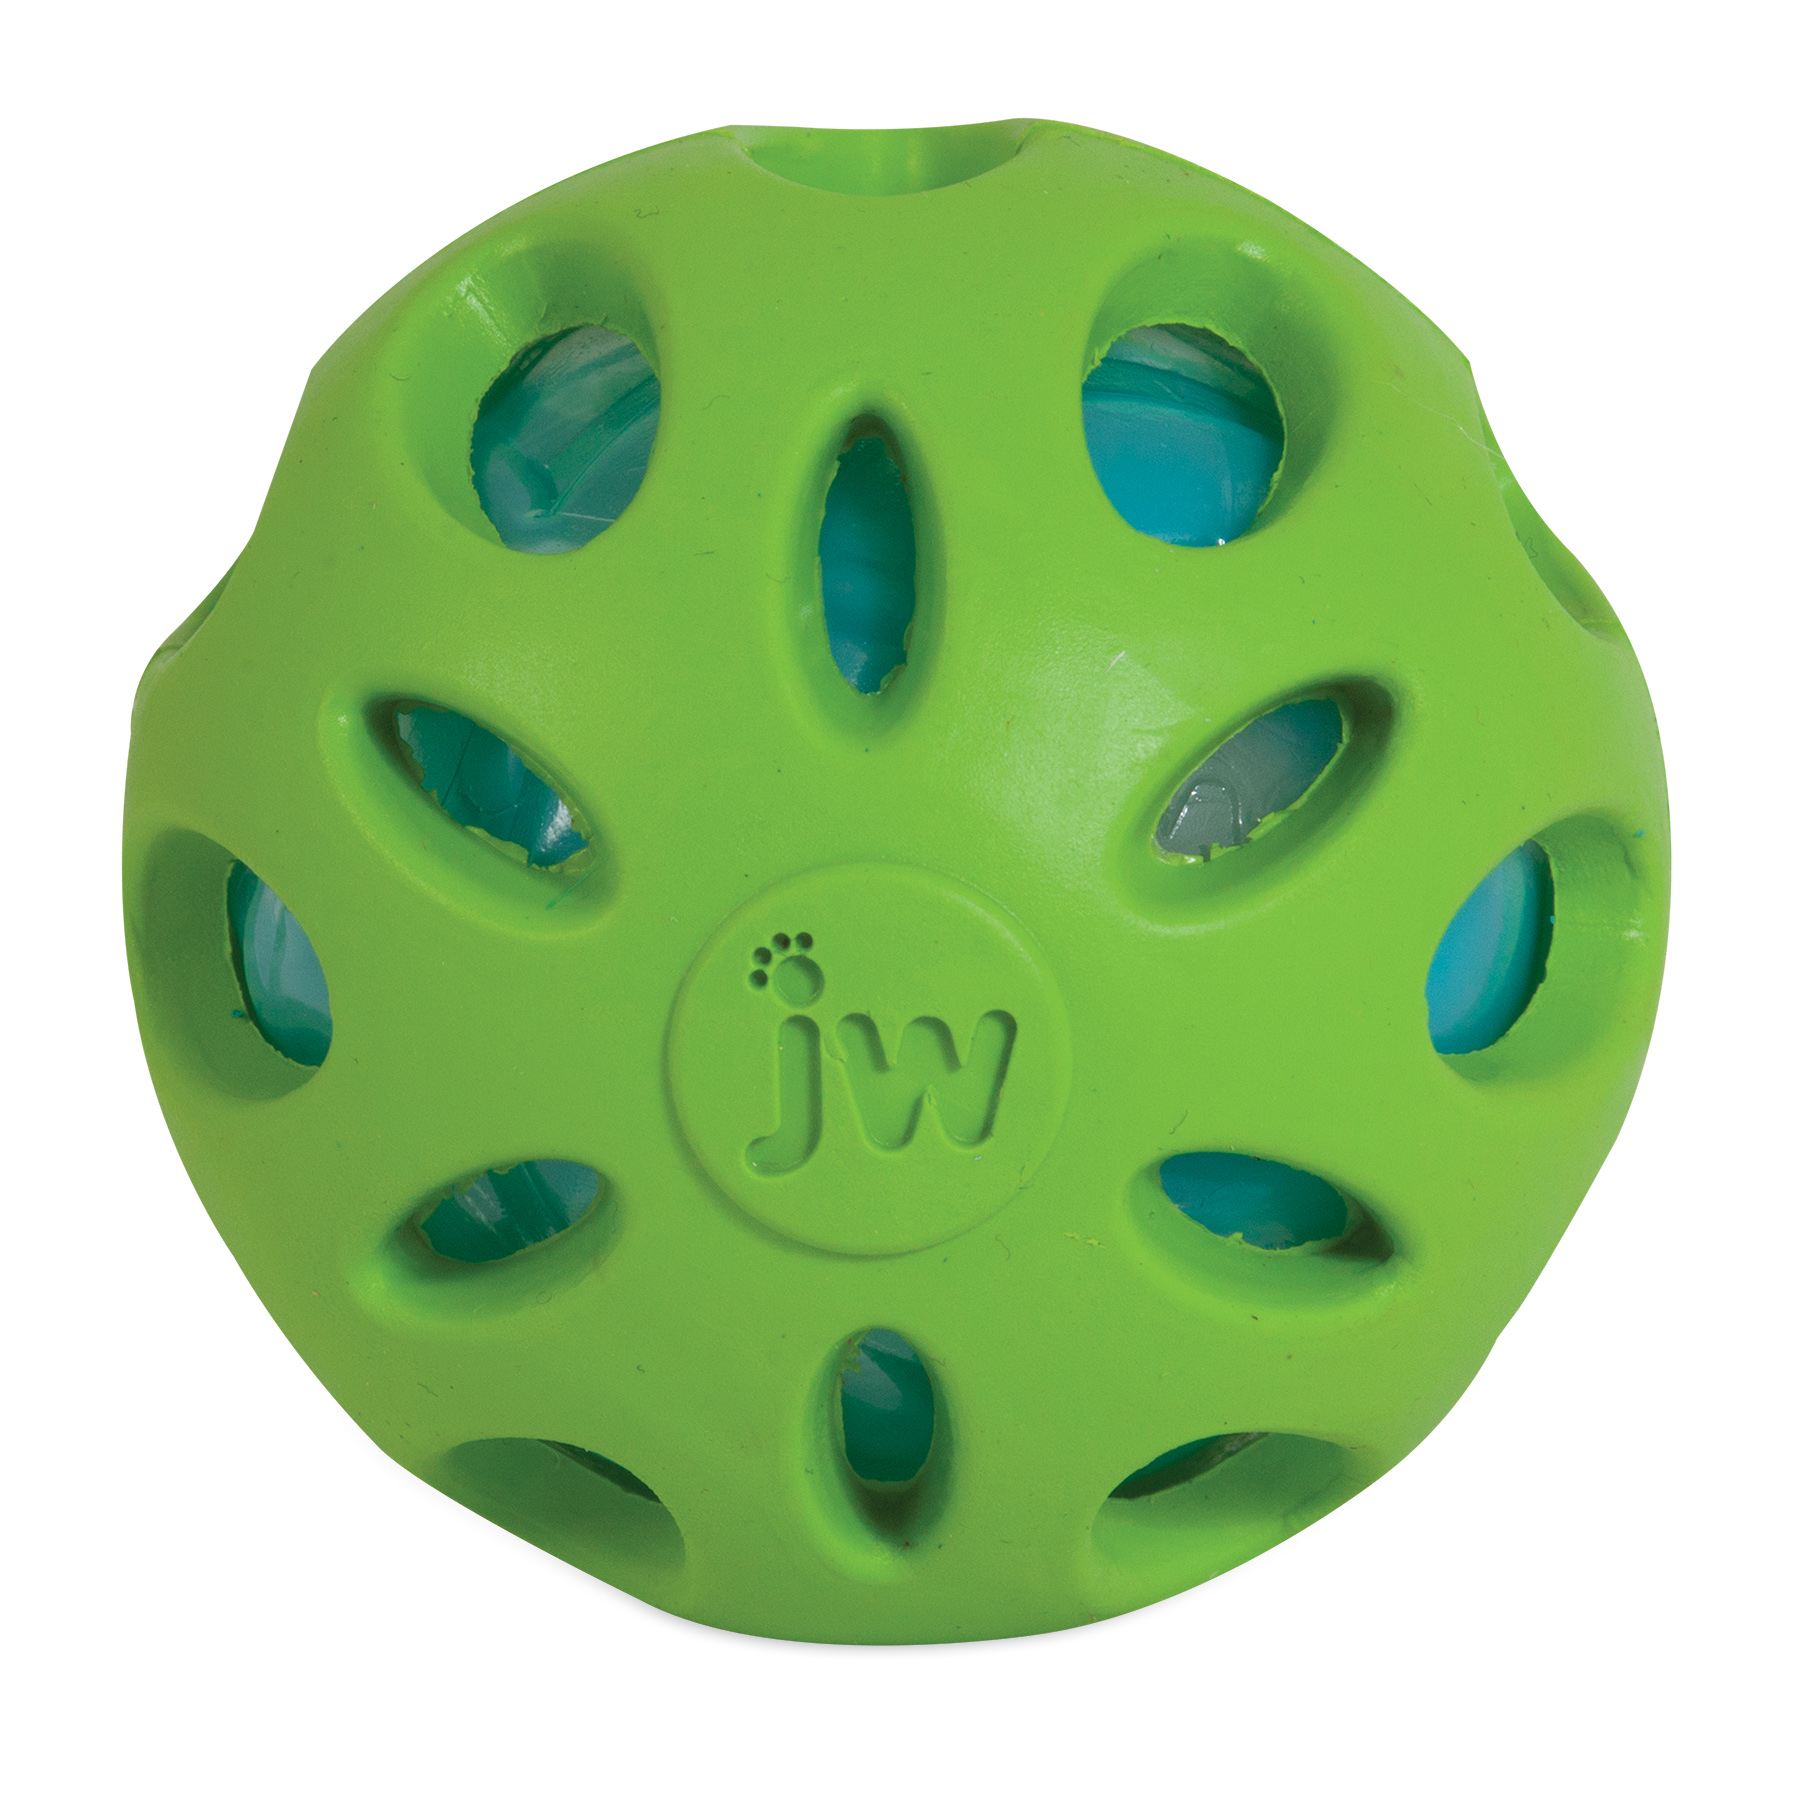 Jw Crackle Heads Crackle Ball Medium